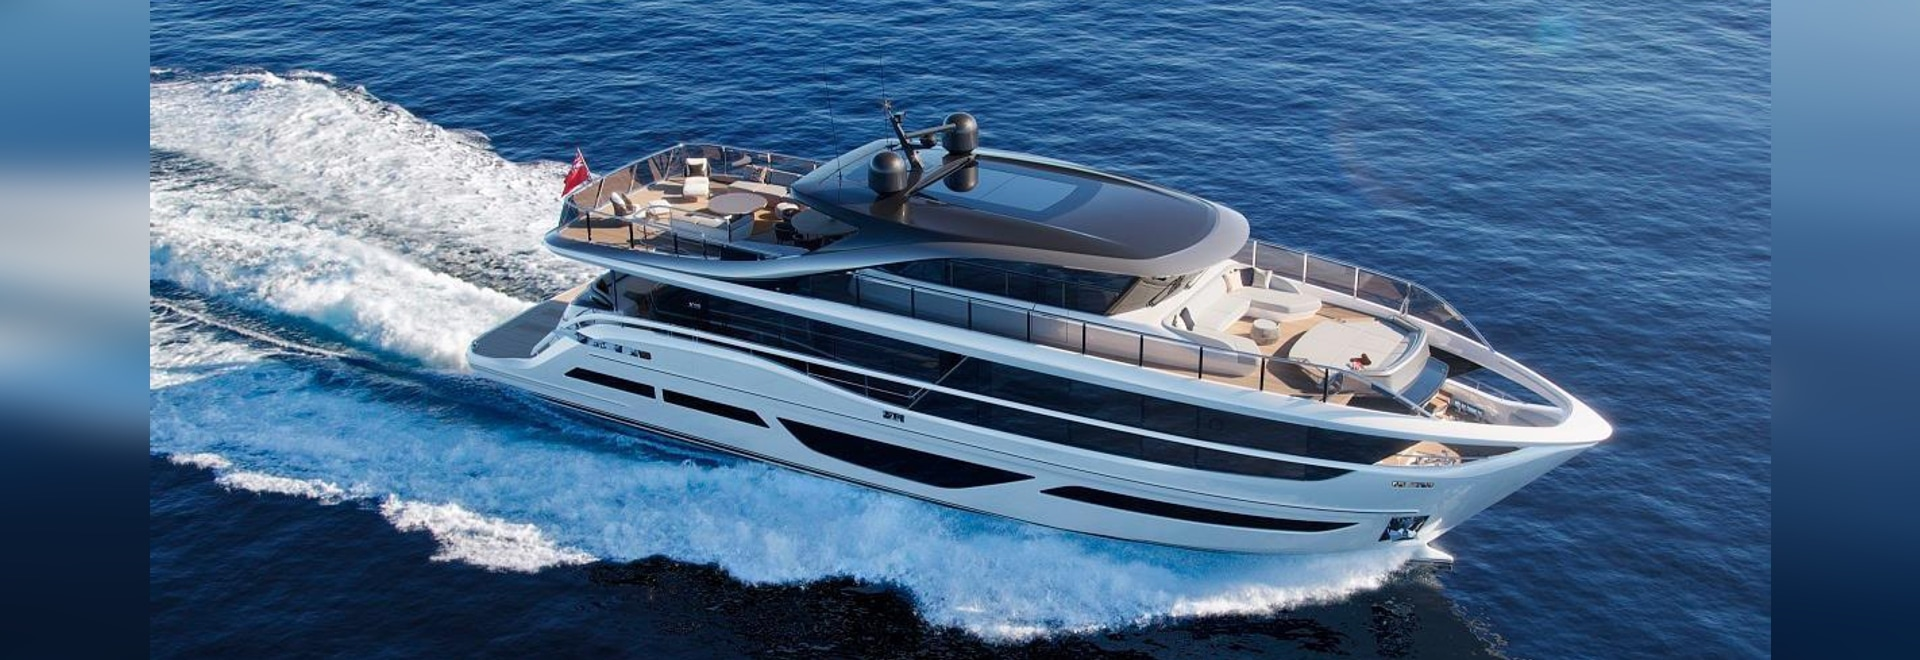 Princess Yachts' X95 is to be fitted with the Bennet Marine trim tab system